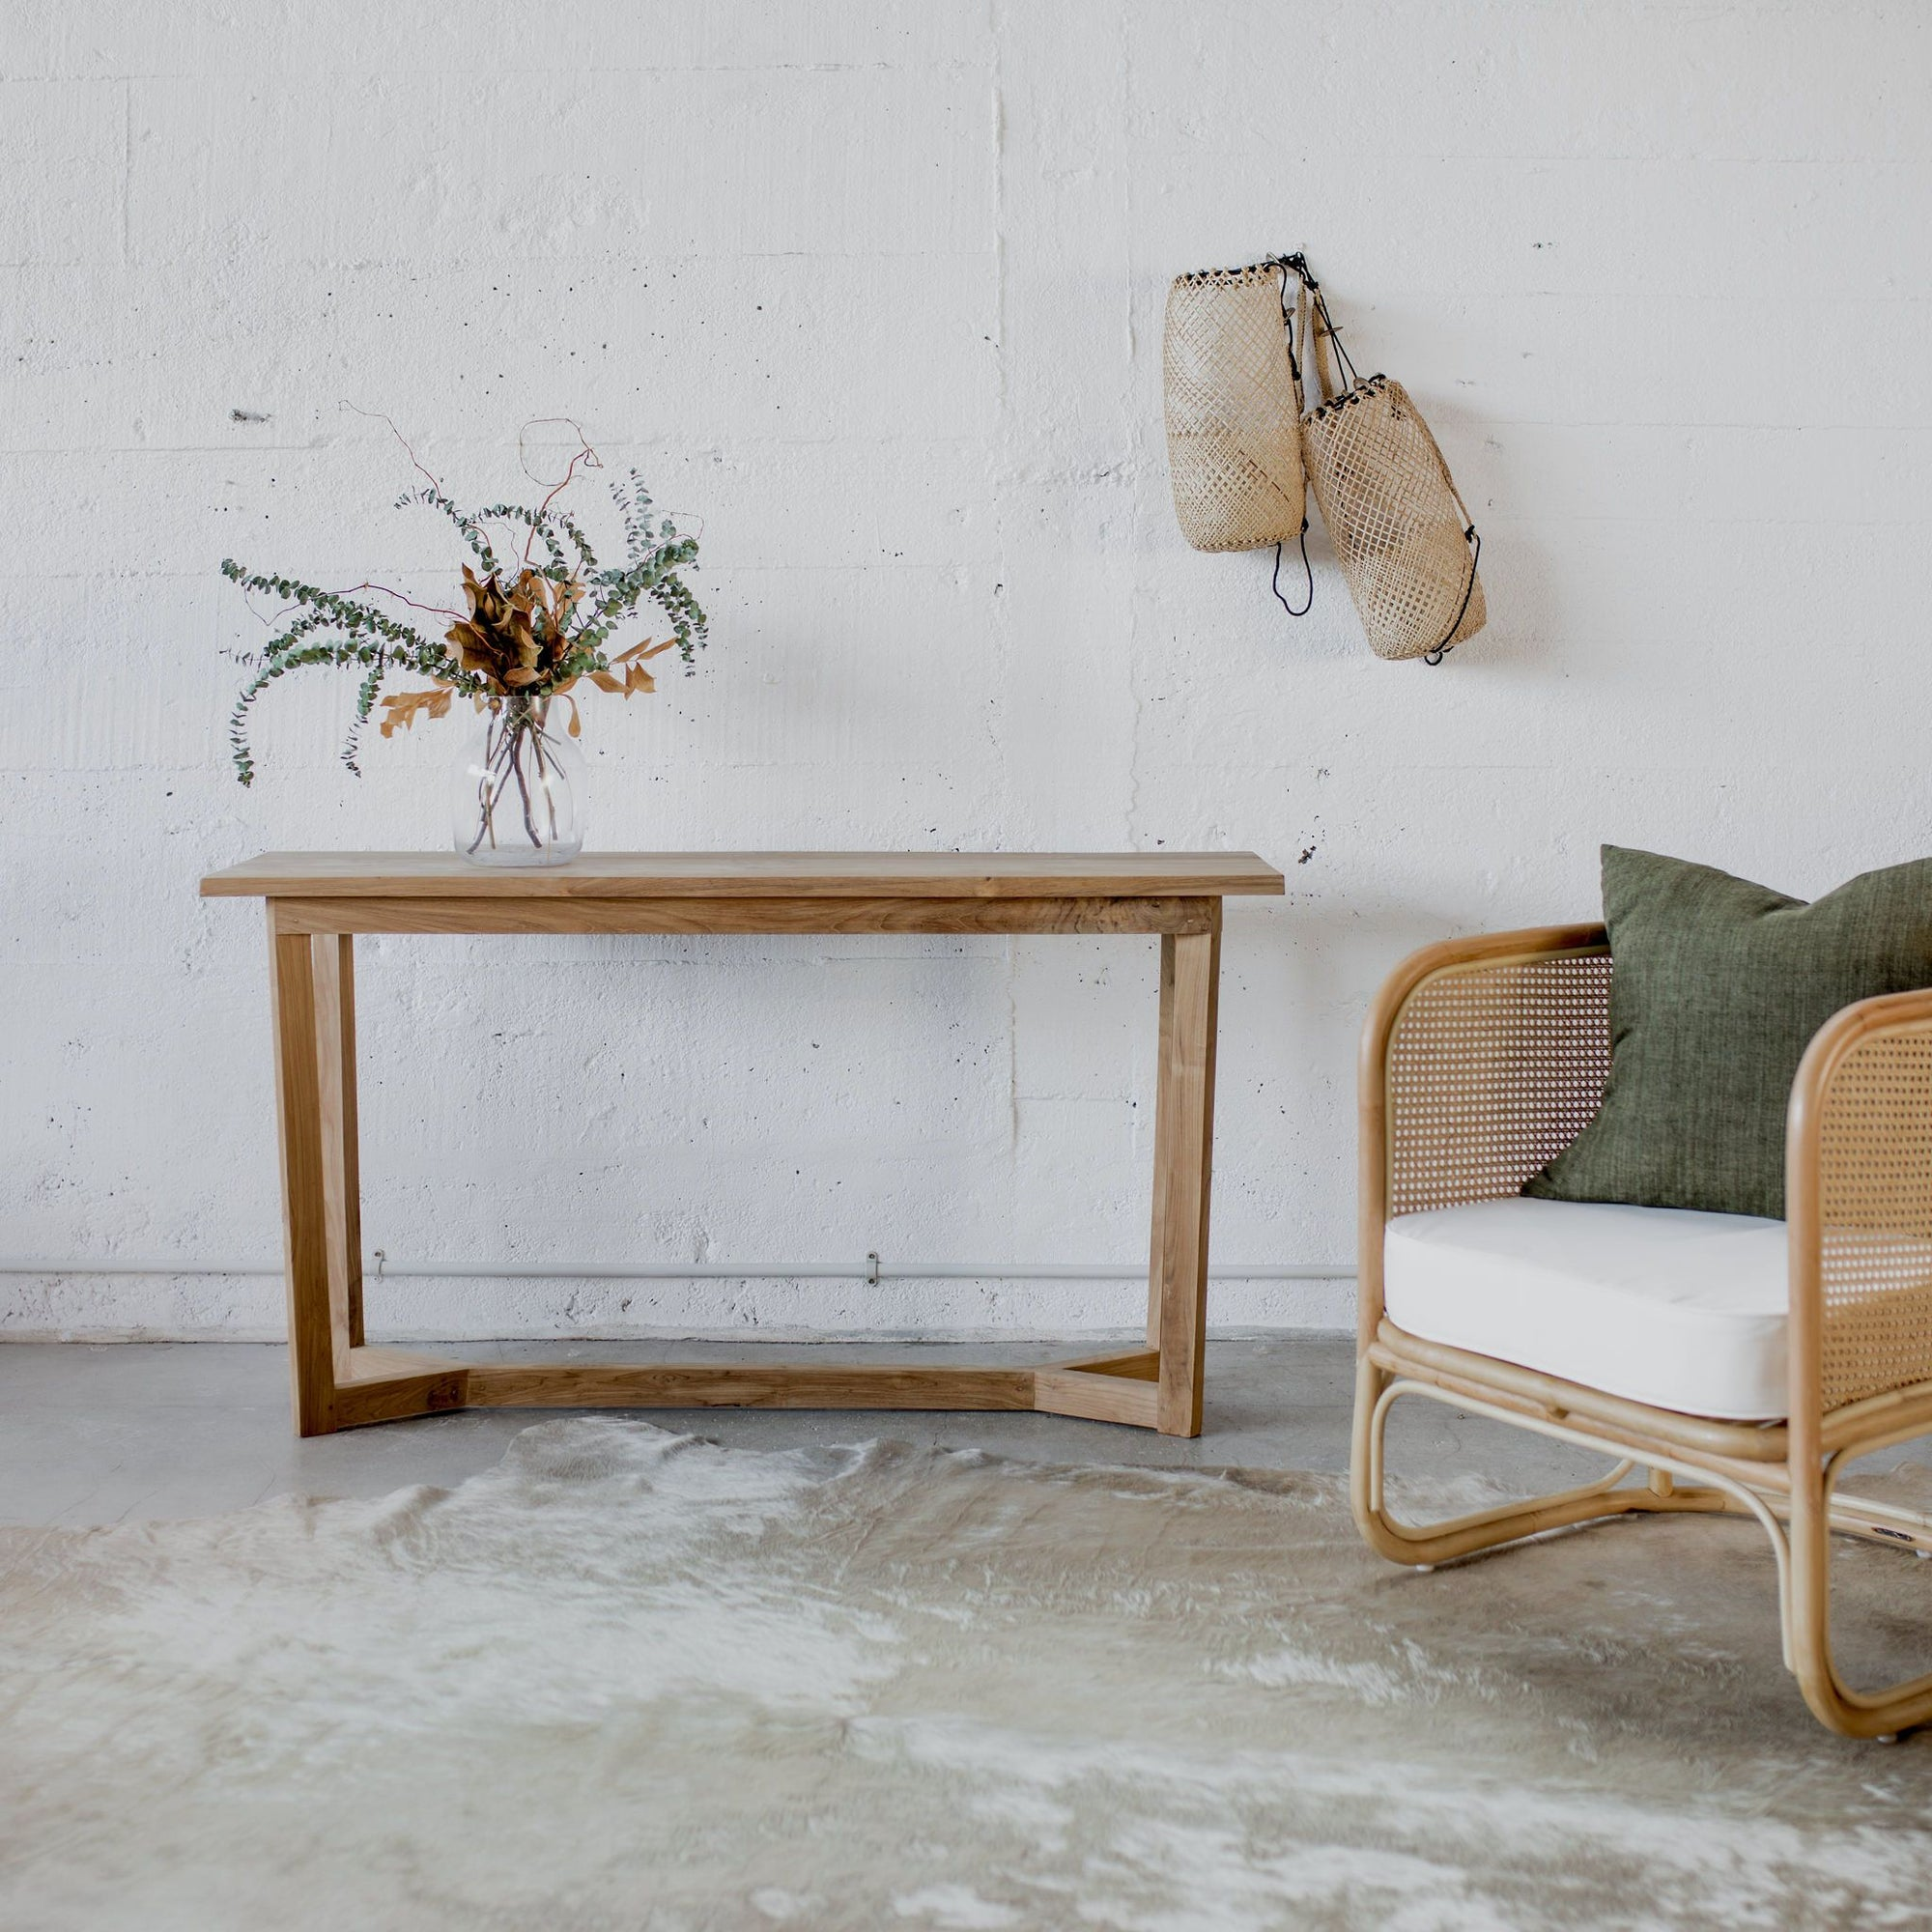 corcovado furniture beach relaxed stylist decor and homewares rattan furniture and sideboard new zealand auckland wellington and christchurch